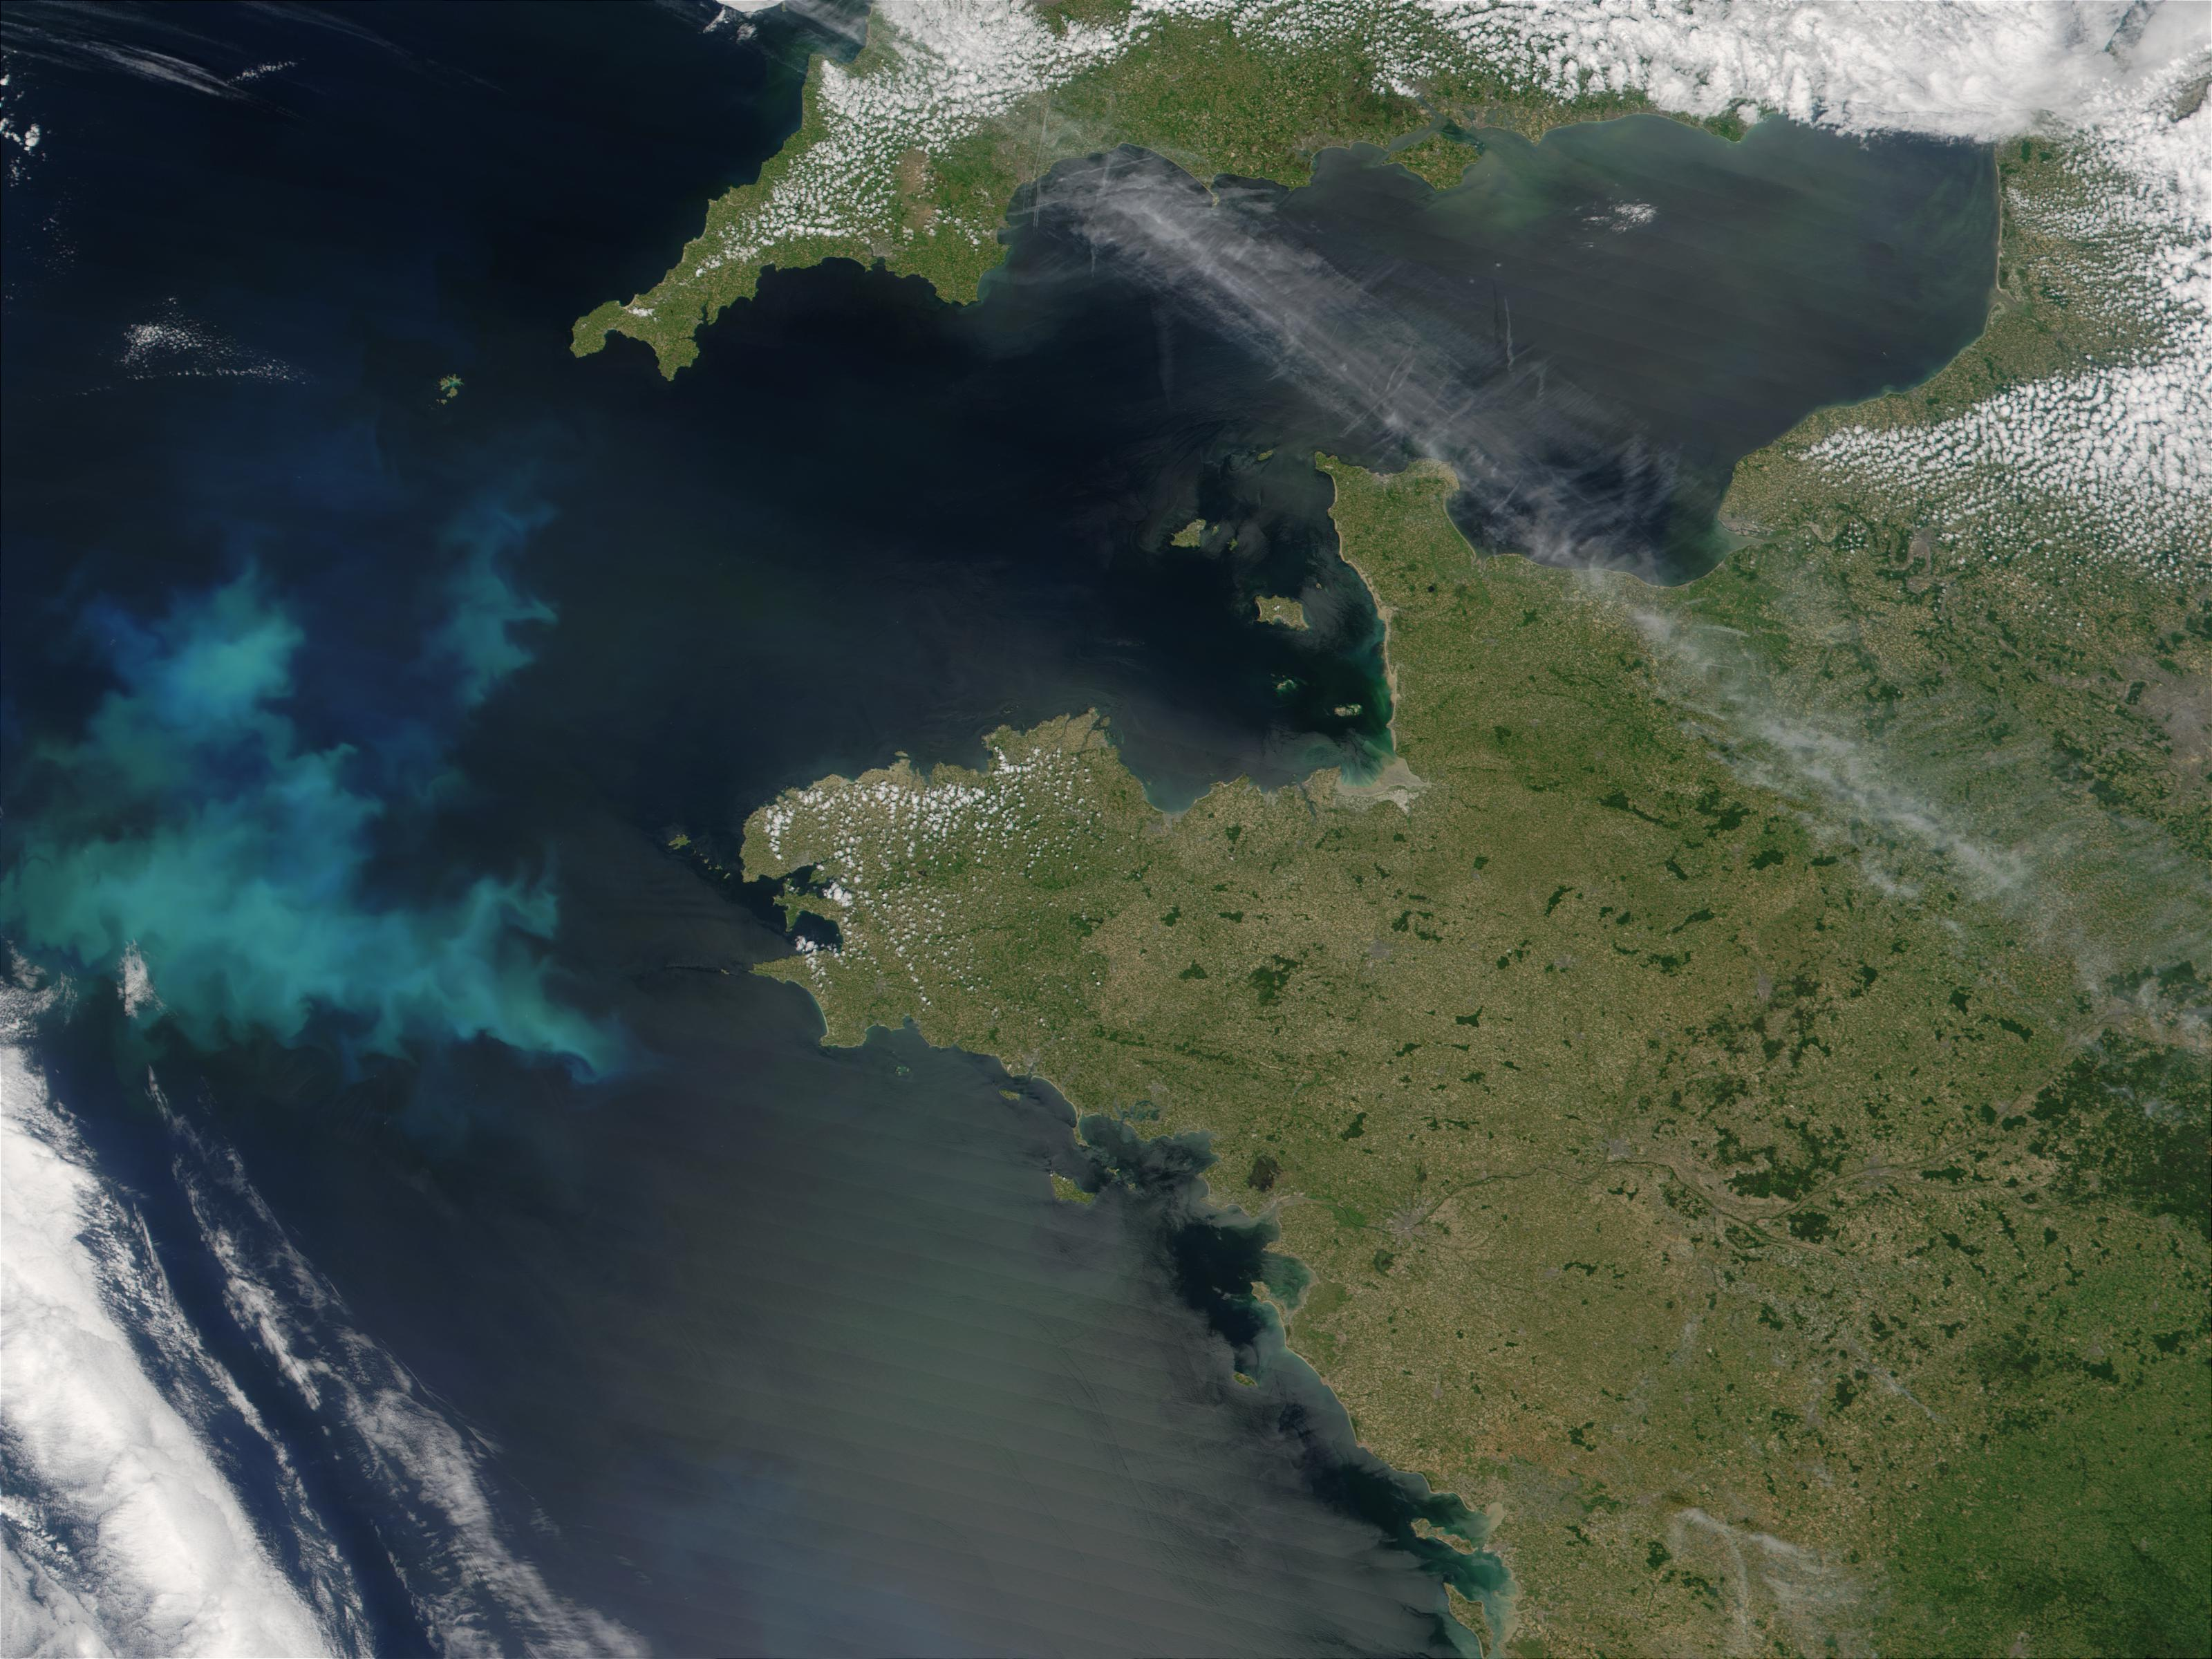 Phytoplankton bloom off the coast of Brittany, France